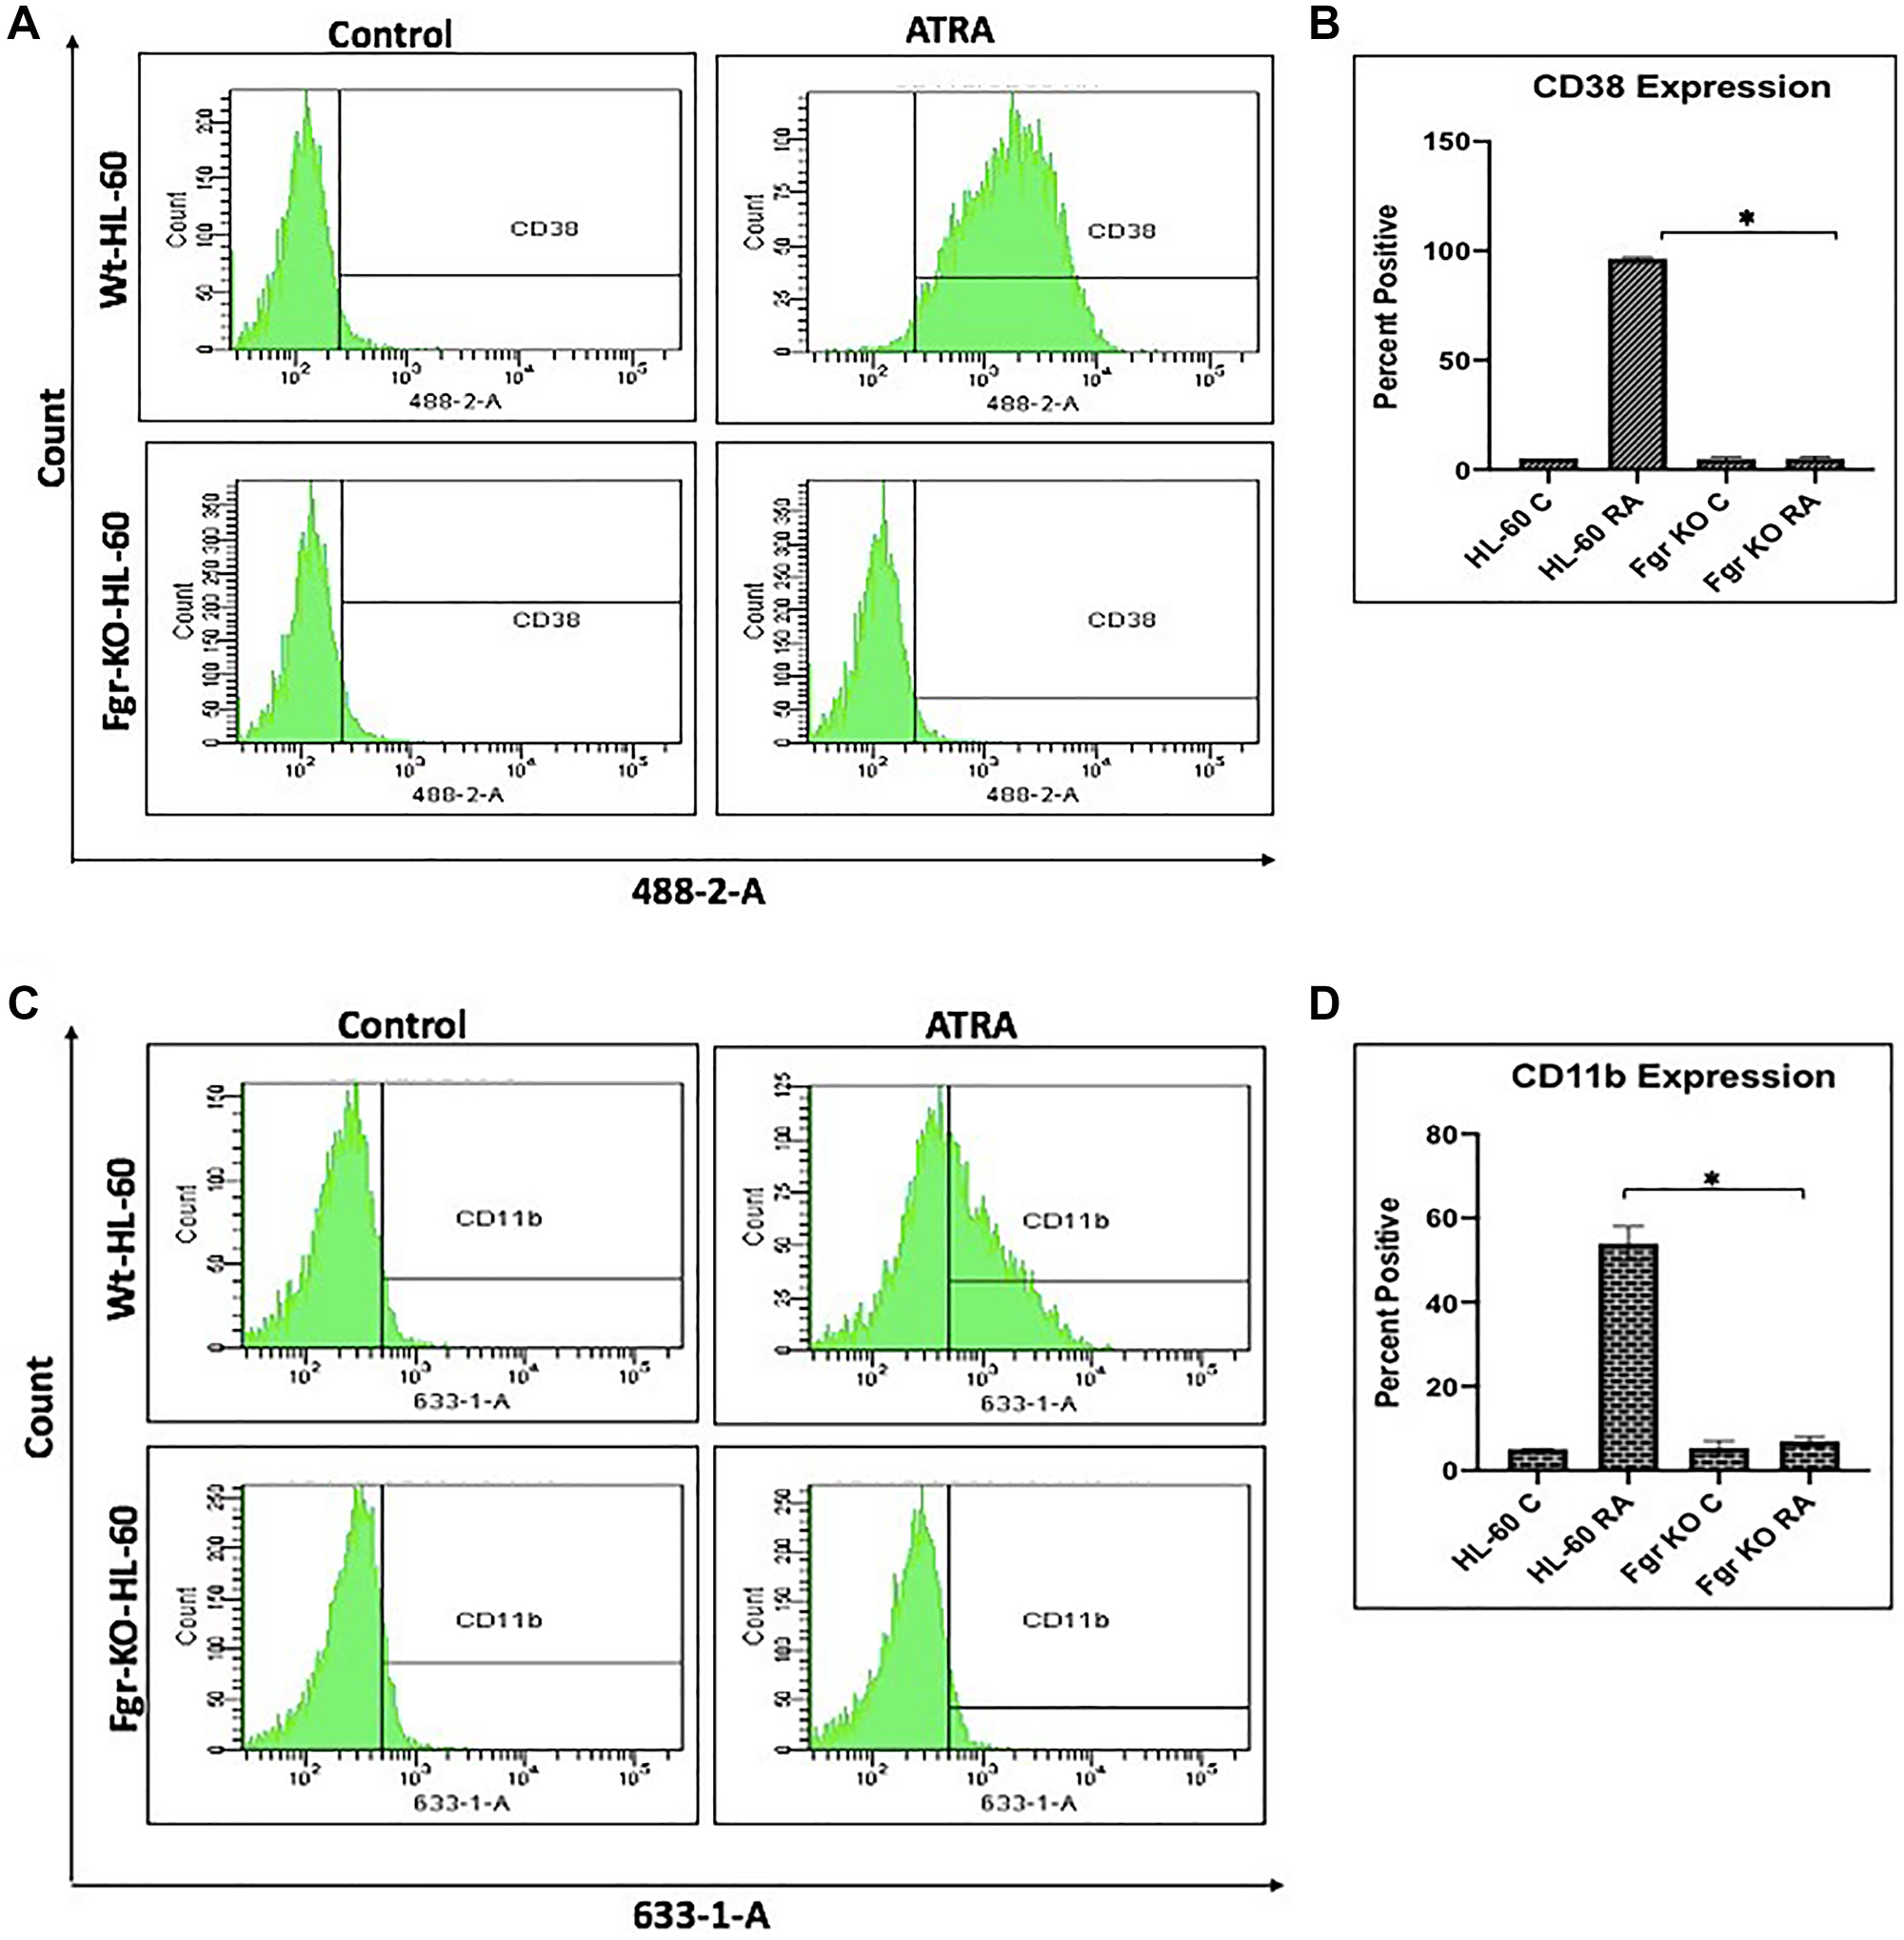 Phenotypic cell surface differentiation marker analysis of HL-60 wt and FGR KO cells untreated and treated with RA.